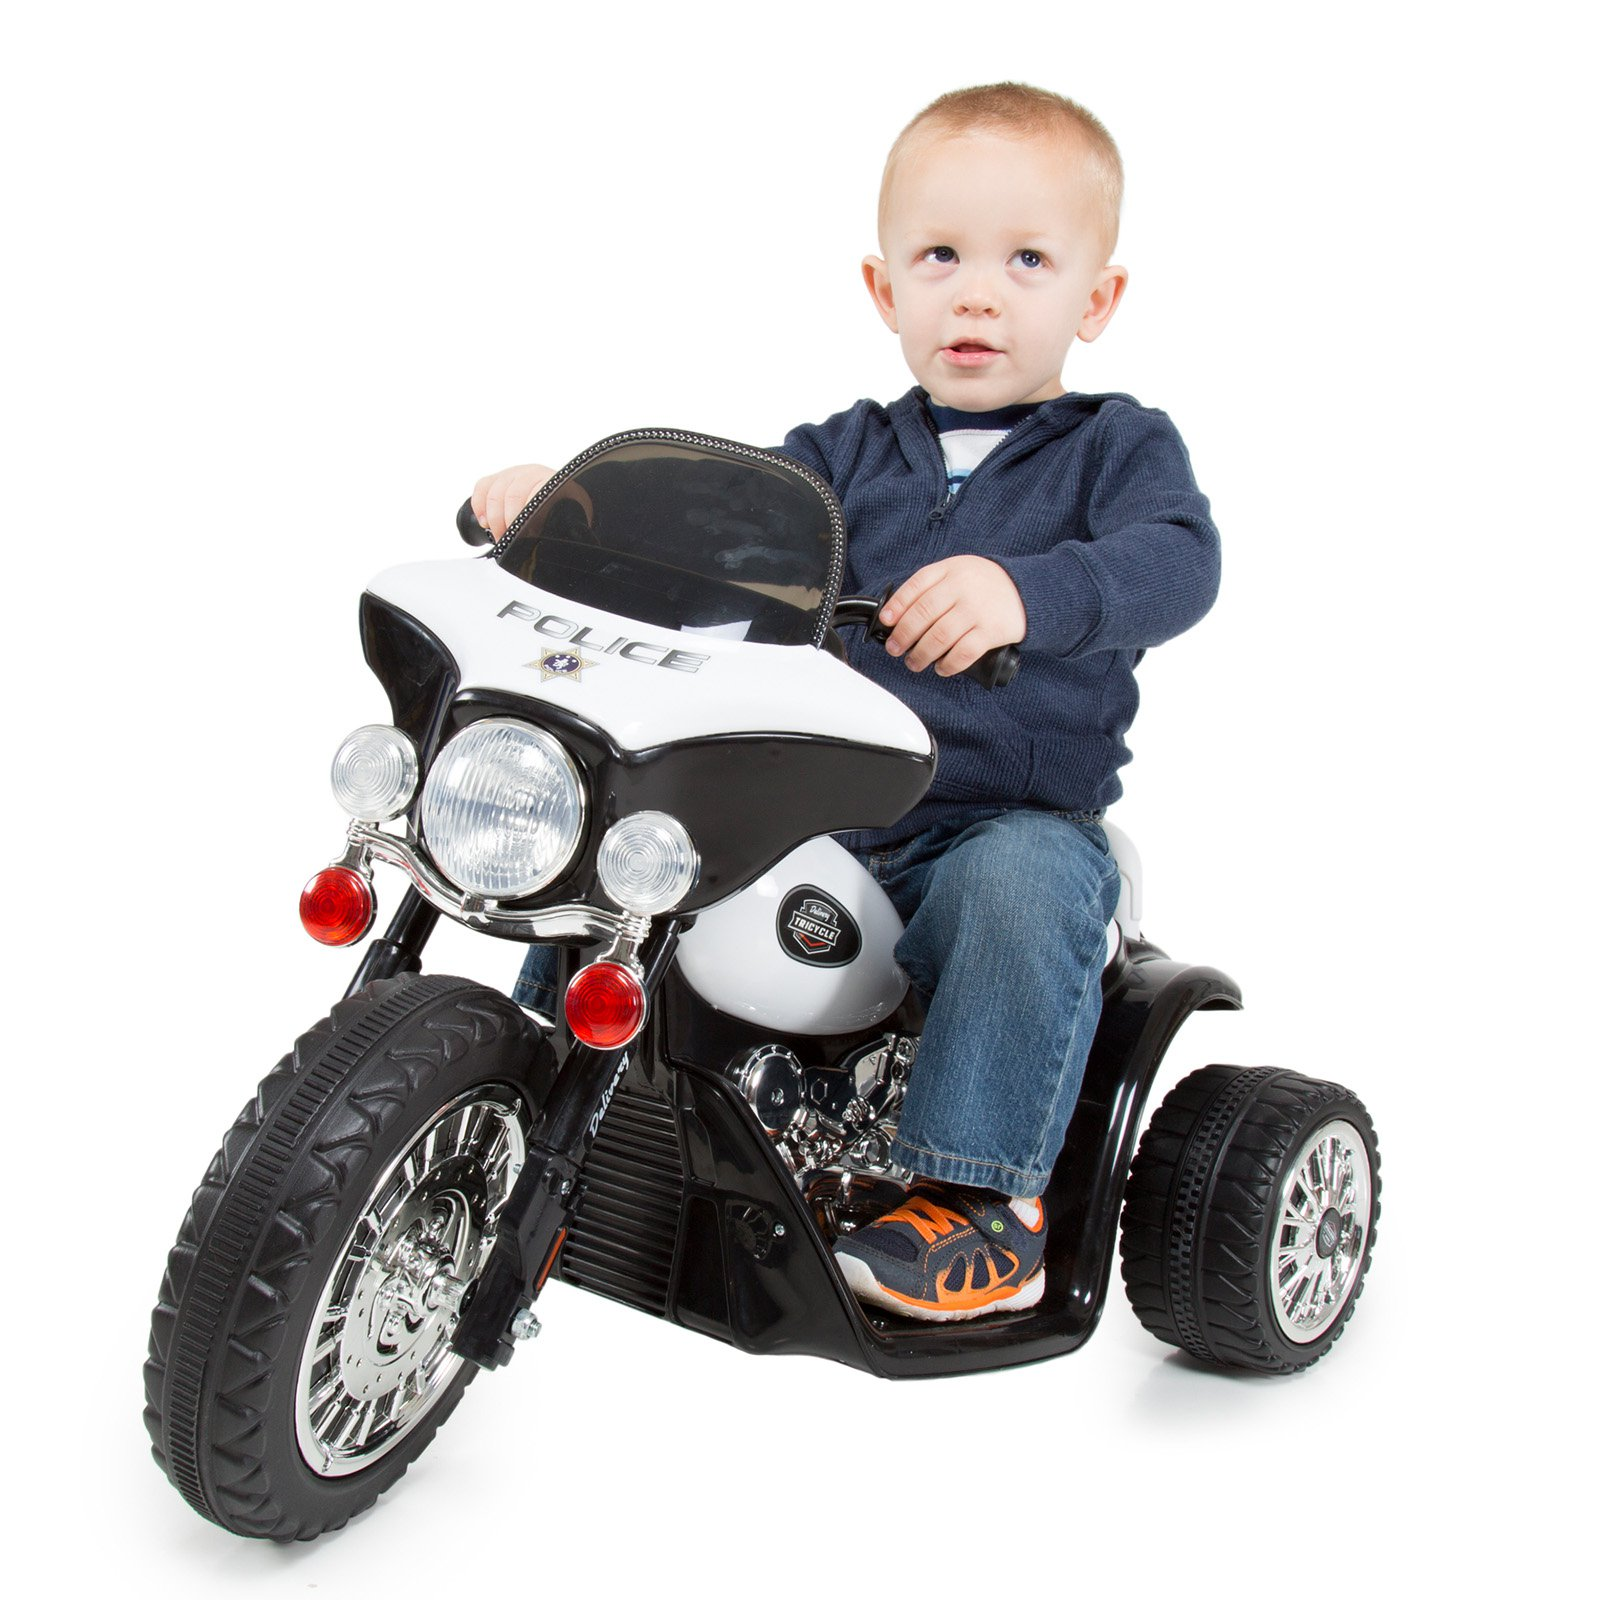 Lil Rider Mini Three Wheel Police Chopper Battery Powered Riding Toy